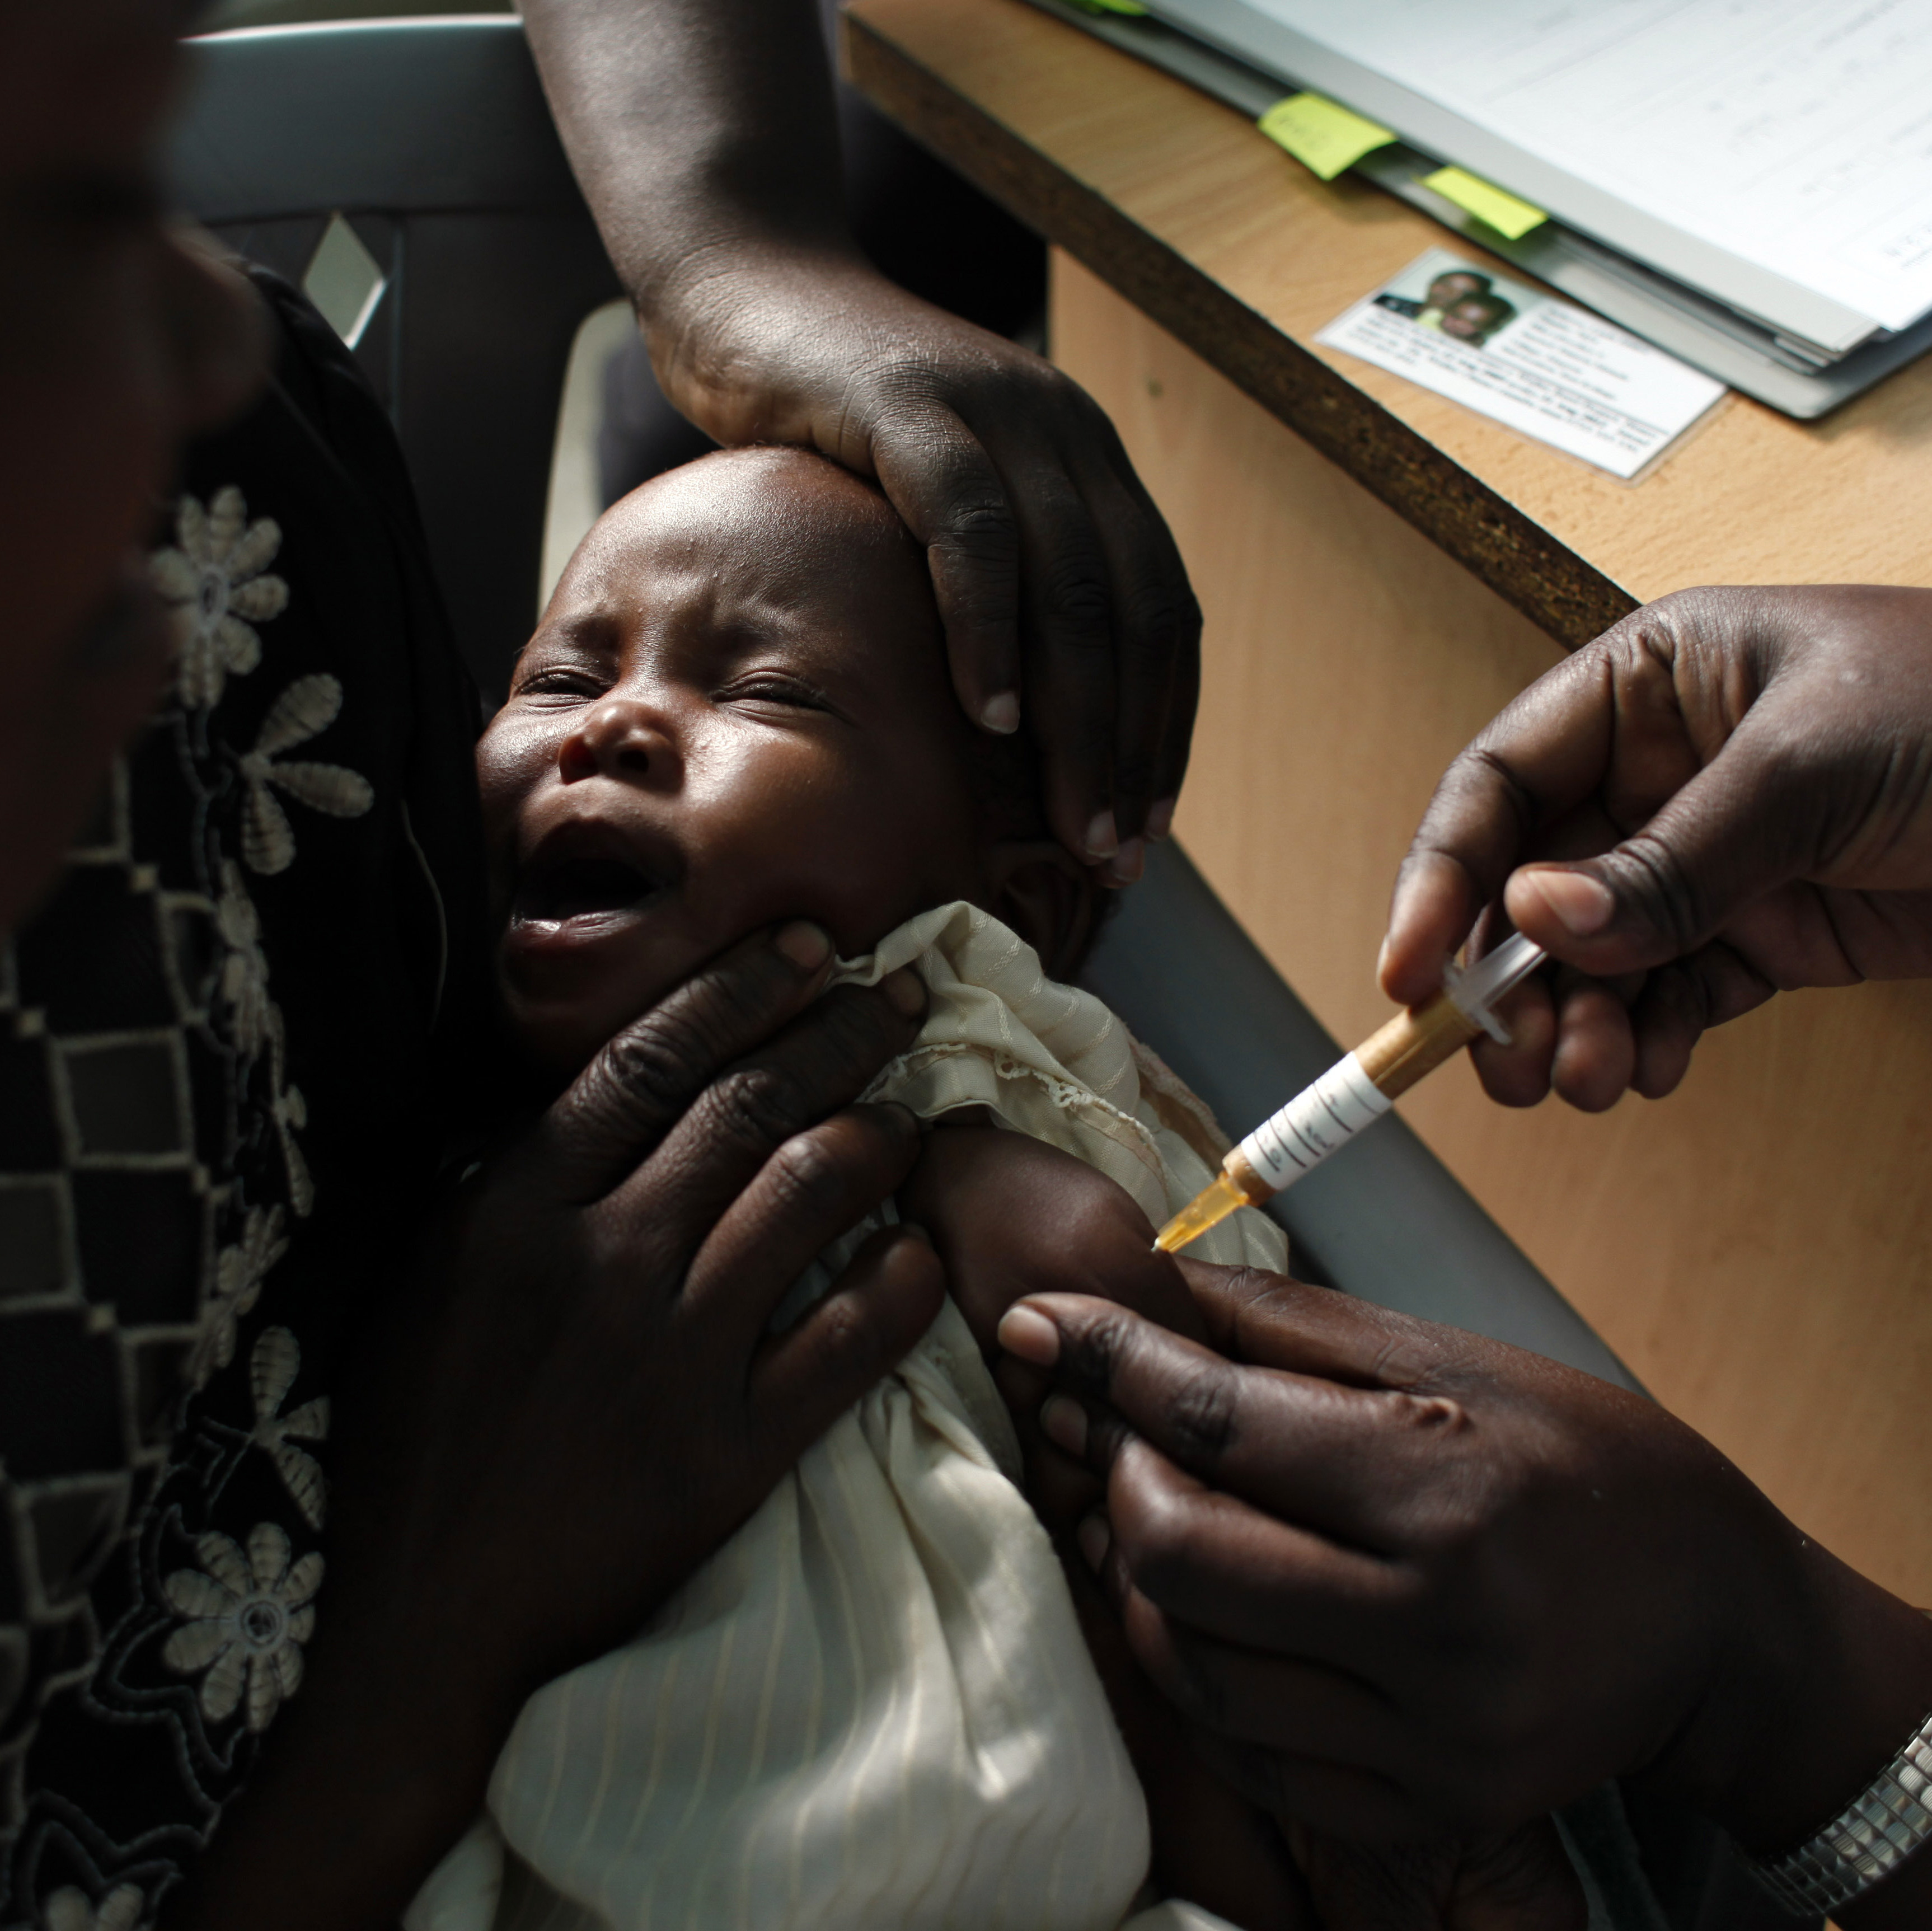 A baby receives a malaria vaccine during a clinical trial at the Walter Reed Project Research Center in Kombewa, Kenya.